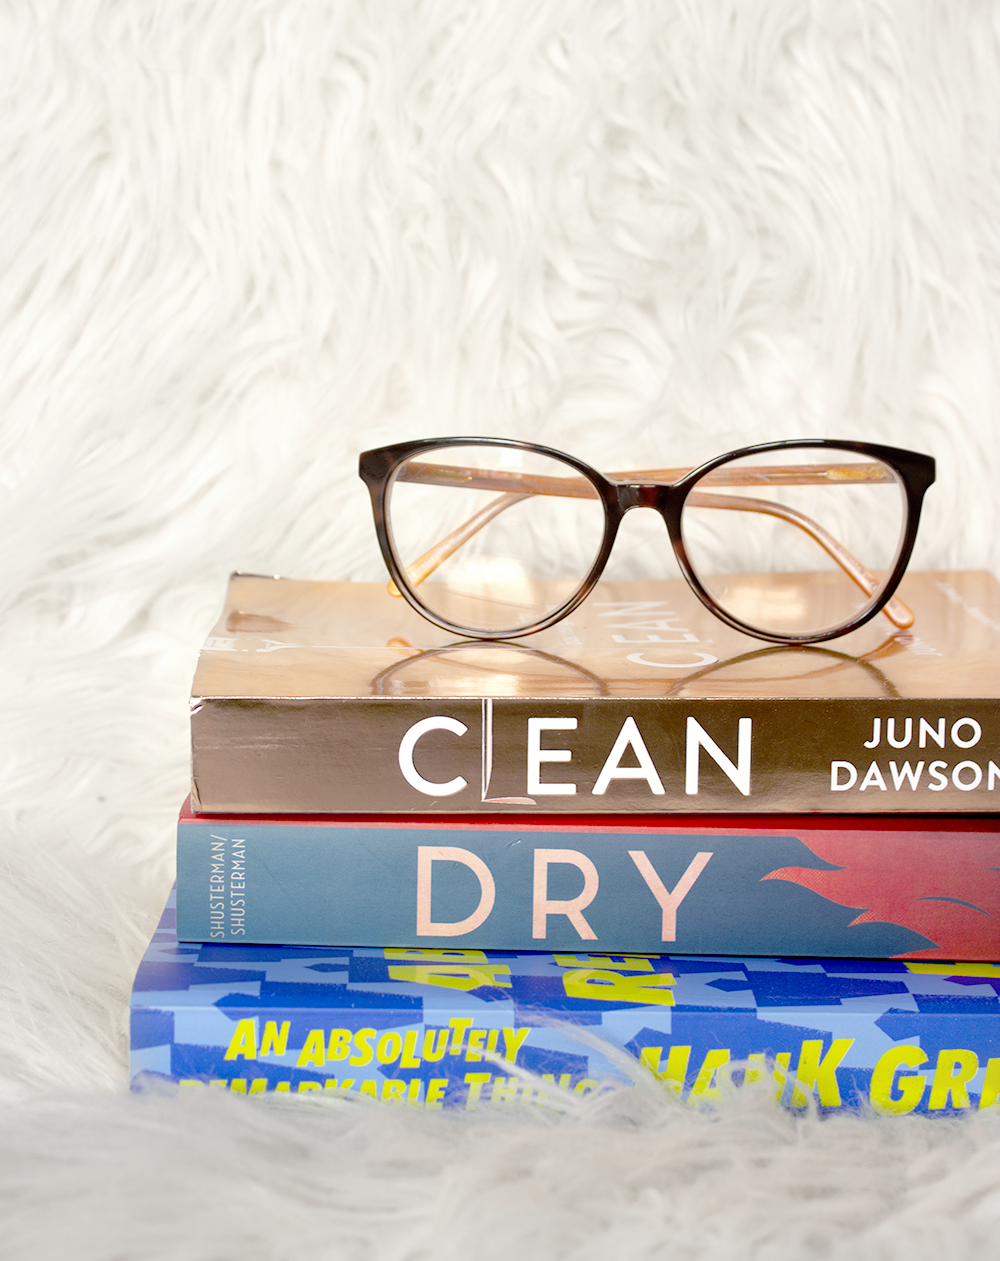 6 book reviews on books I read in January. Dry by Jarrod and Neal Shusterman, An Absolutely Remarkable Thing by Hank Green, and Clean by Juno Dawson